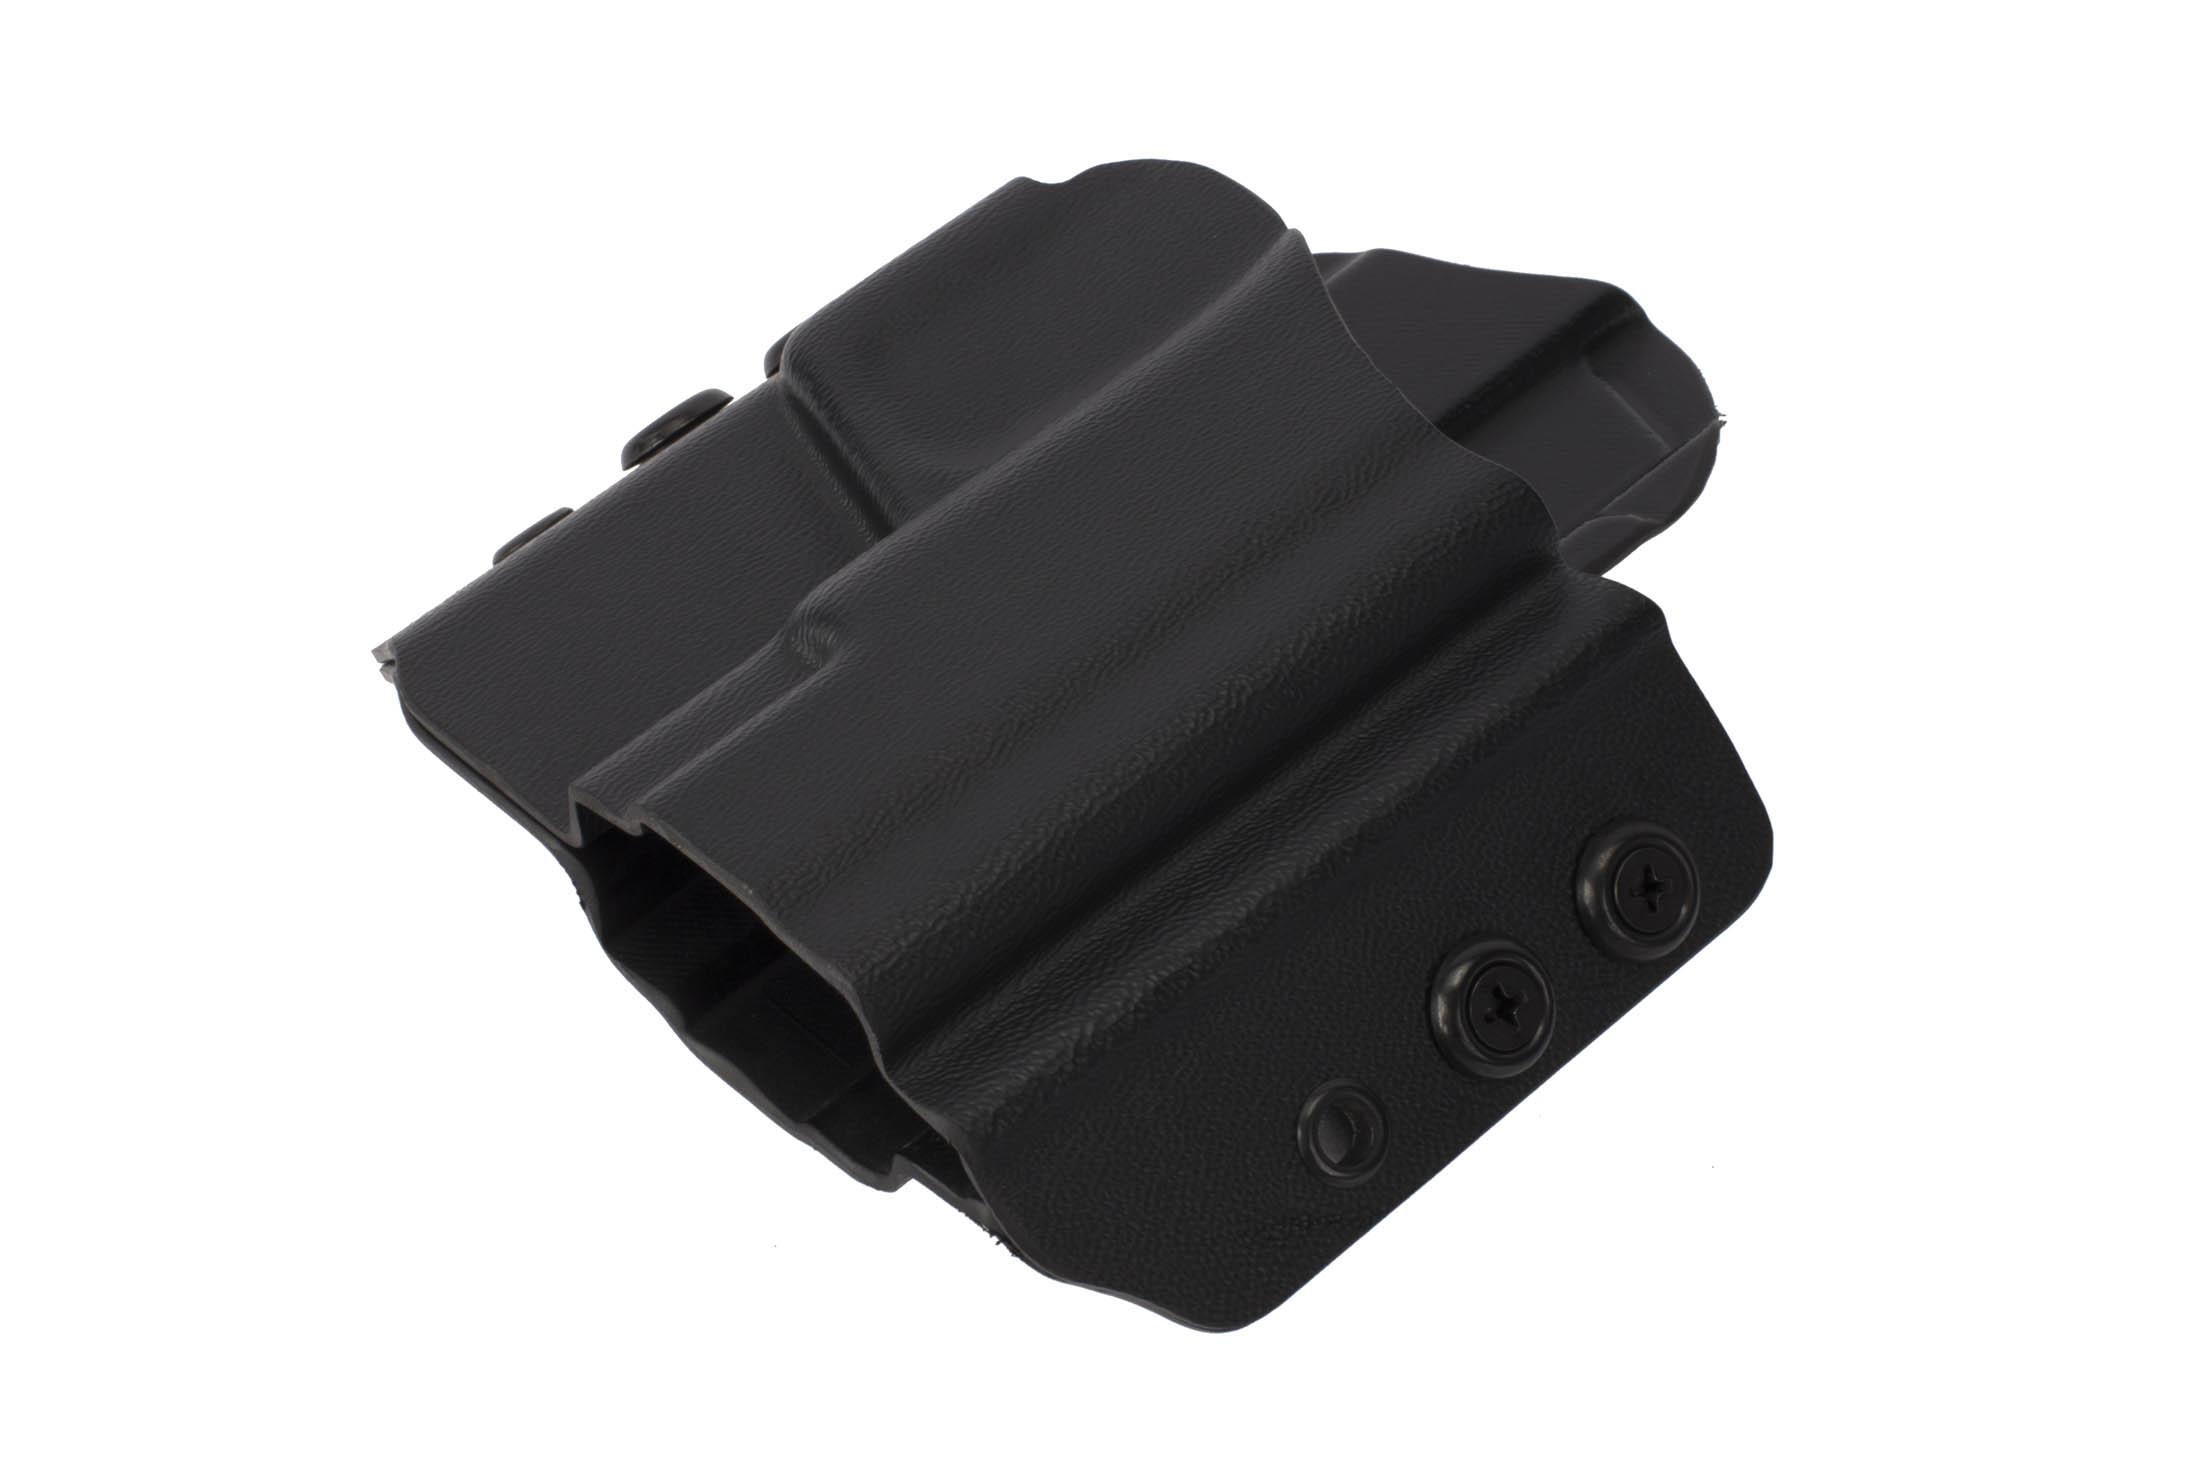 High Speed Gear's black kydex holster has a low profile design allowing for on belt concealement with a cover garment